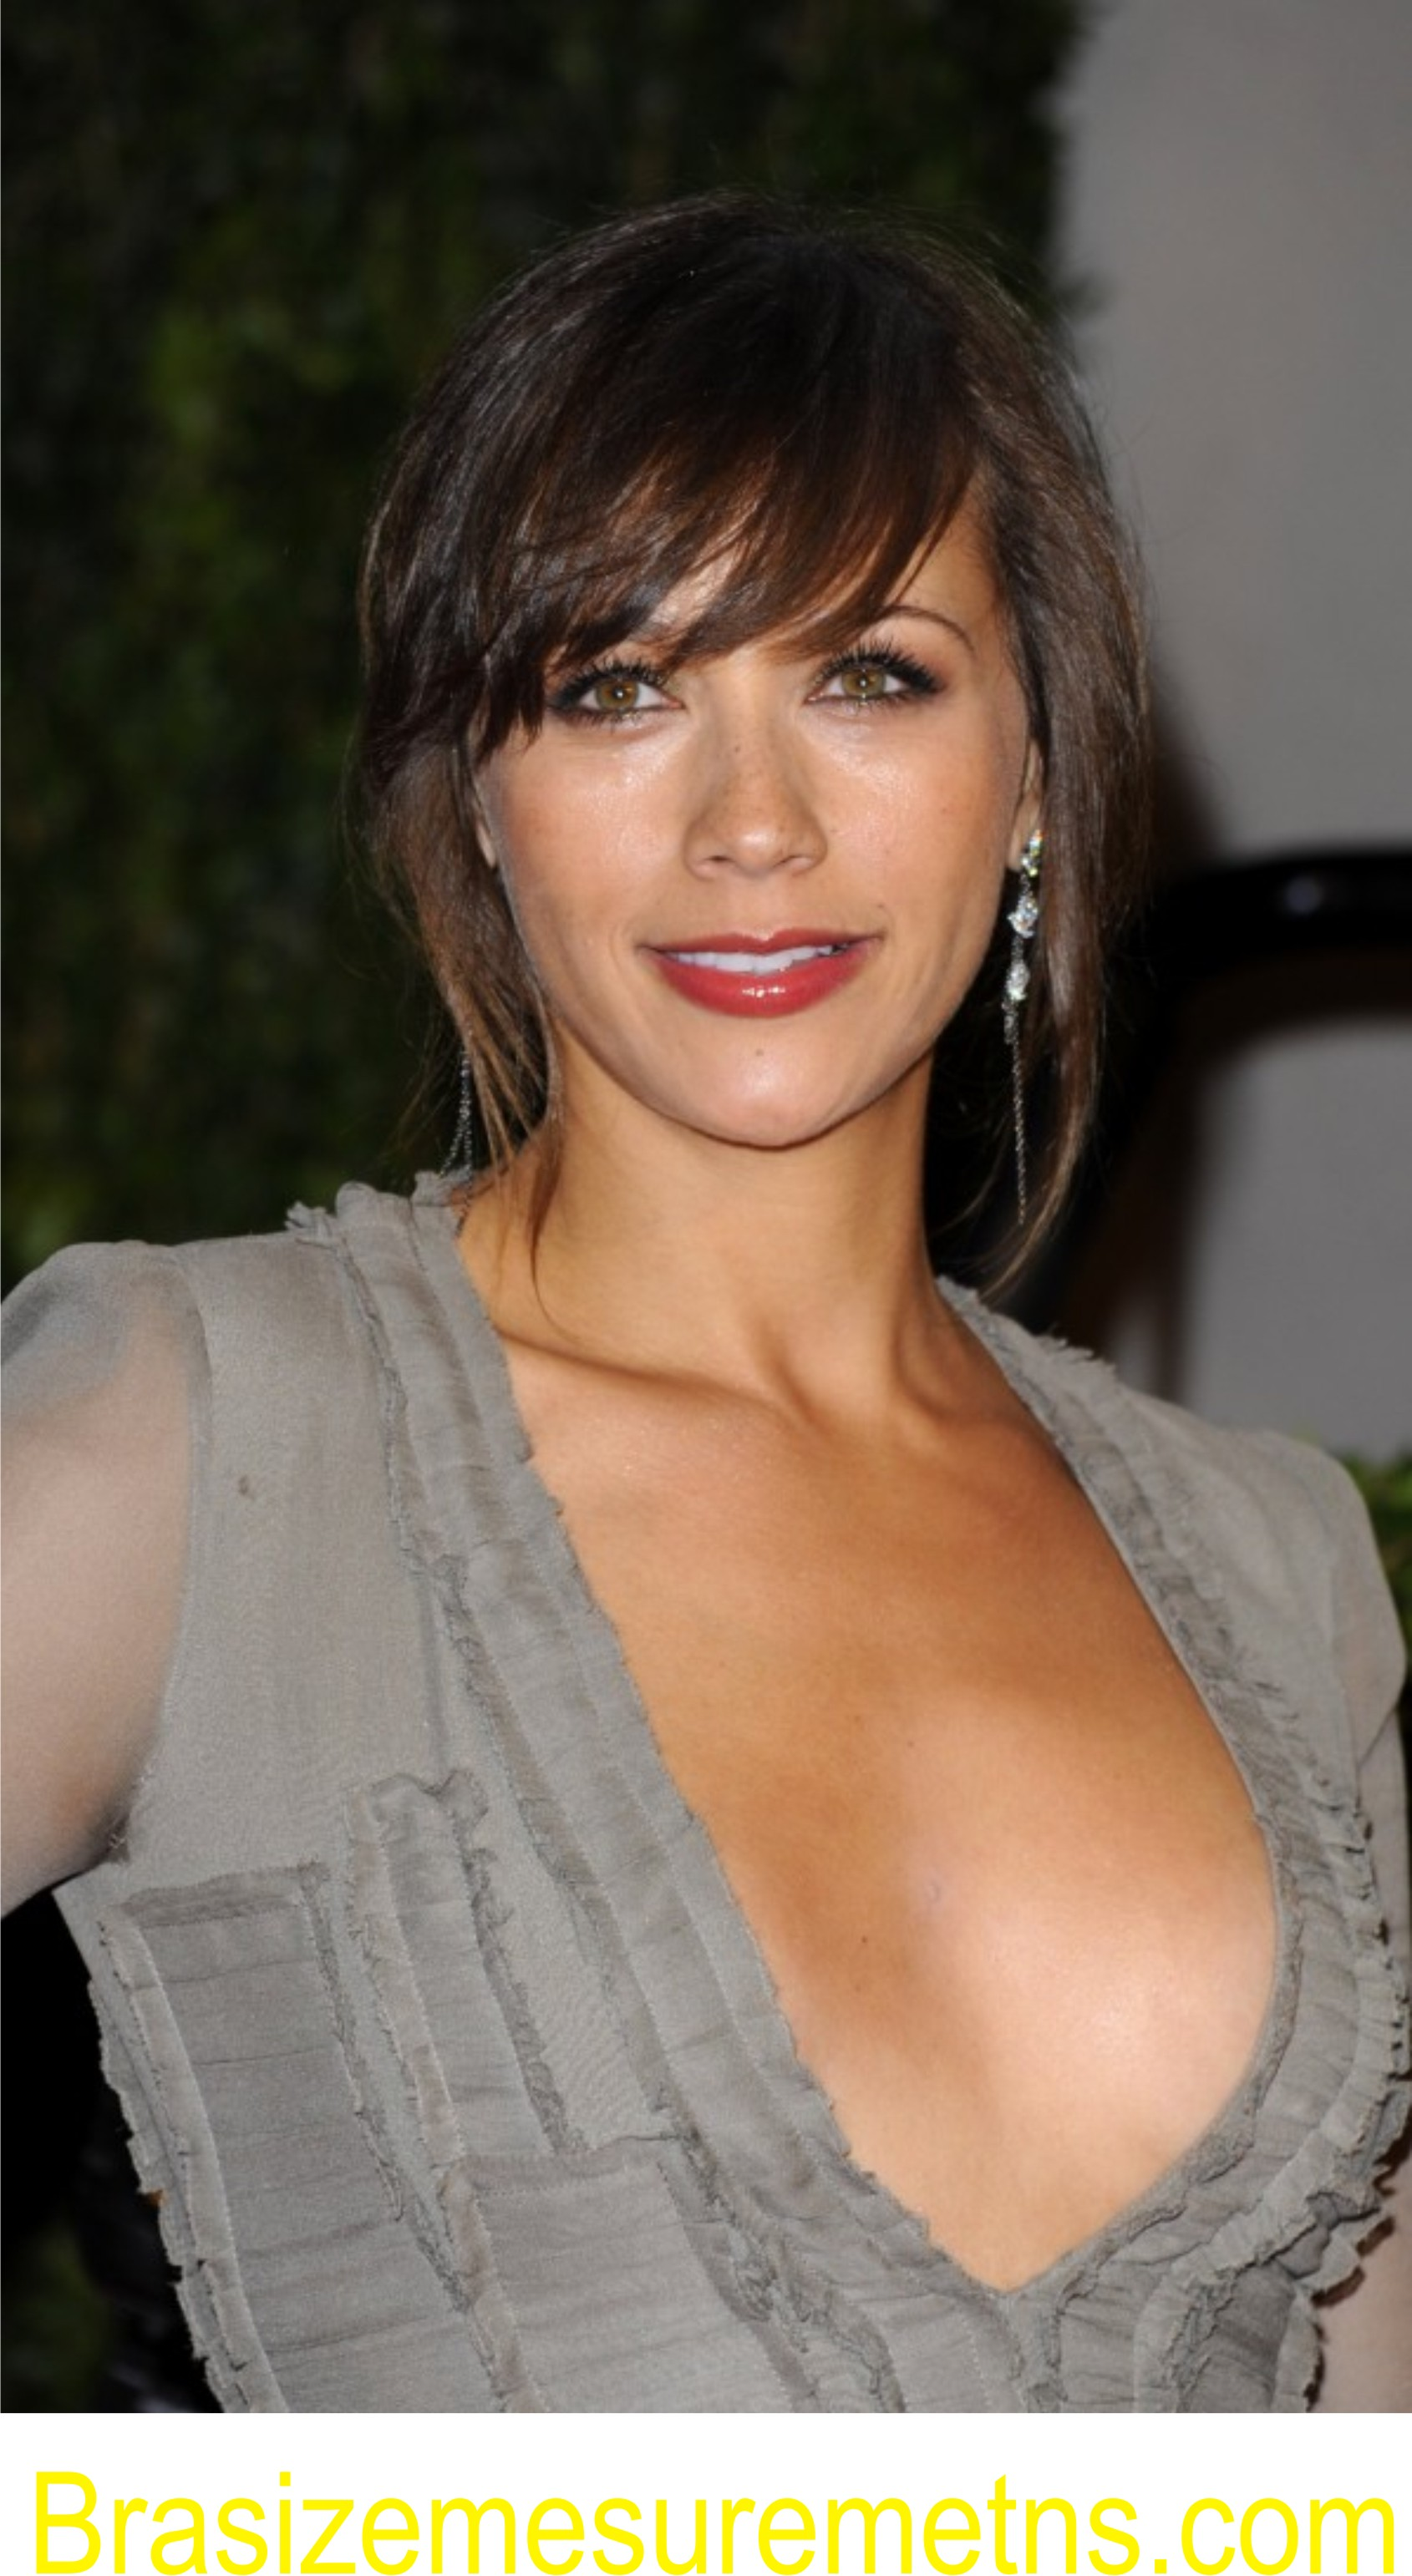 Rashida Jones Bra Size